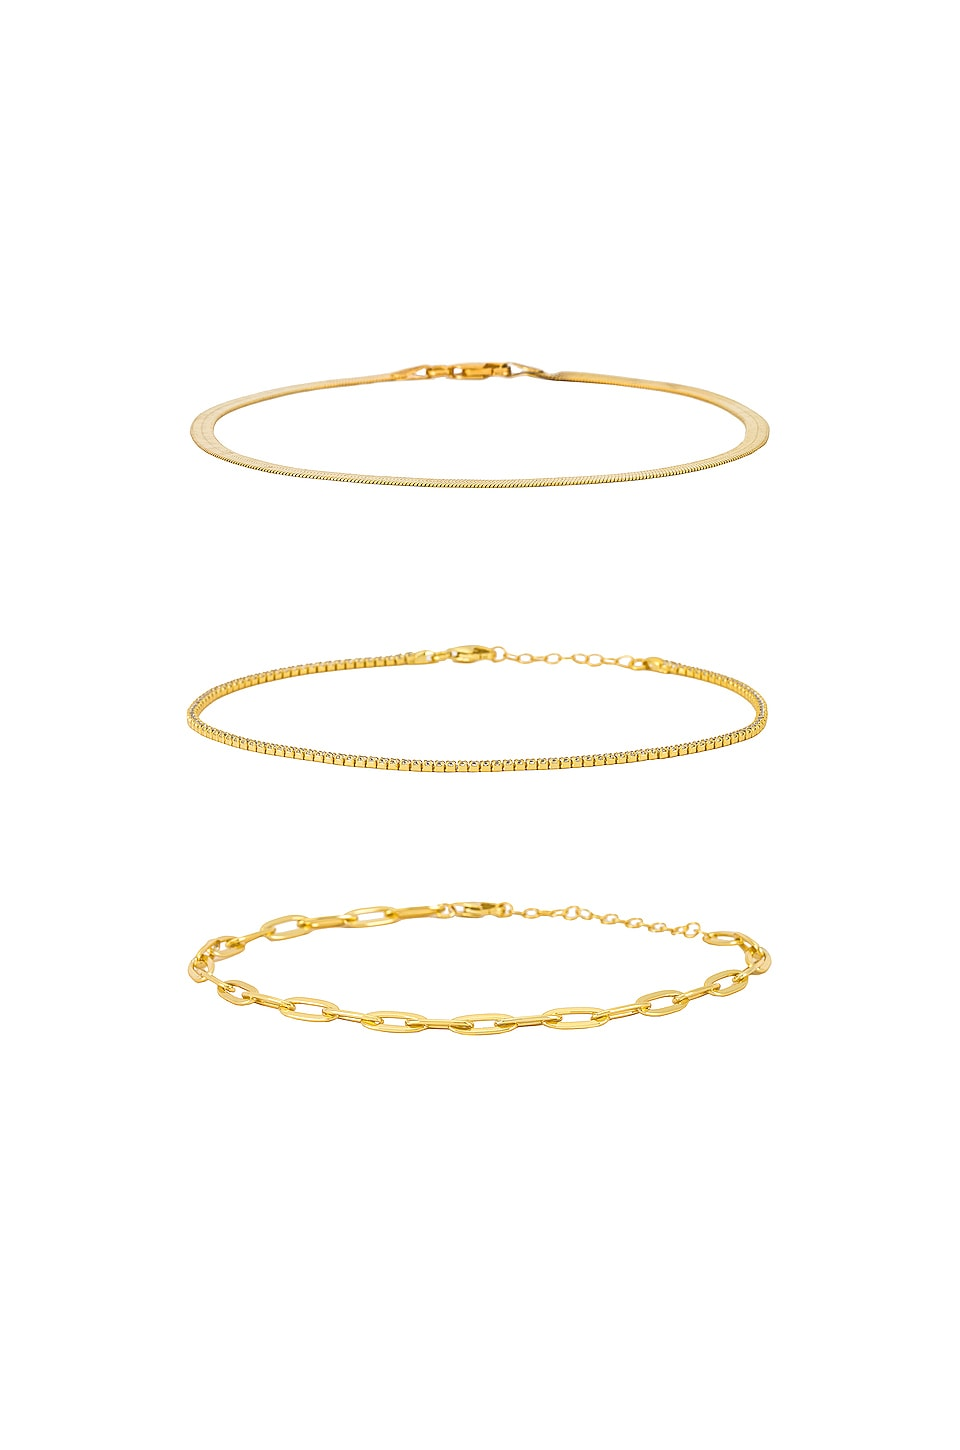 The M Jewelers NY Anklet Set in Gold